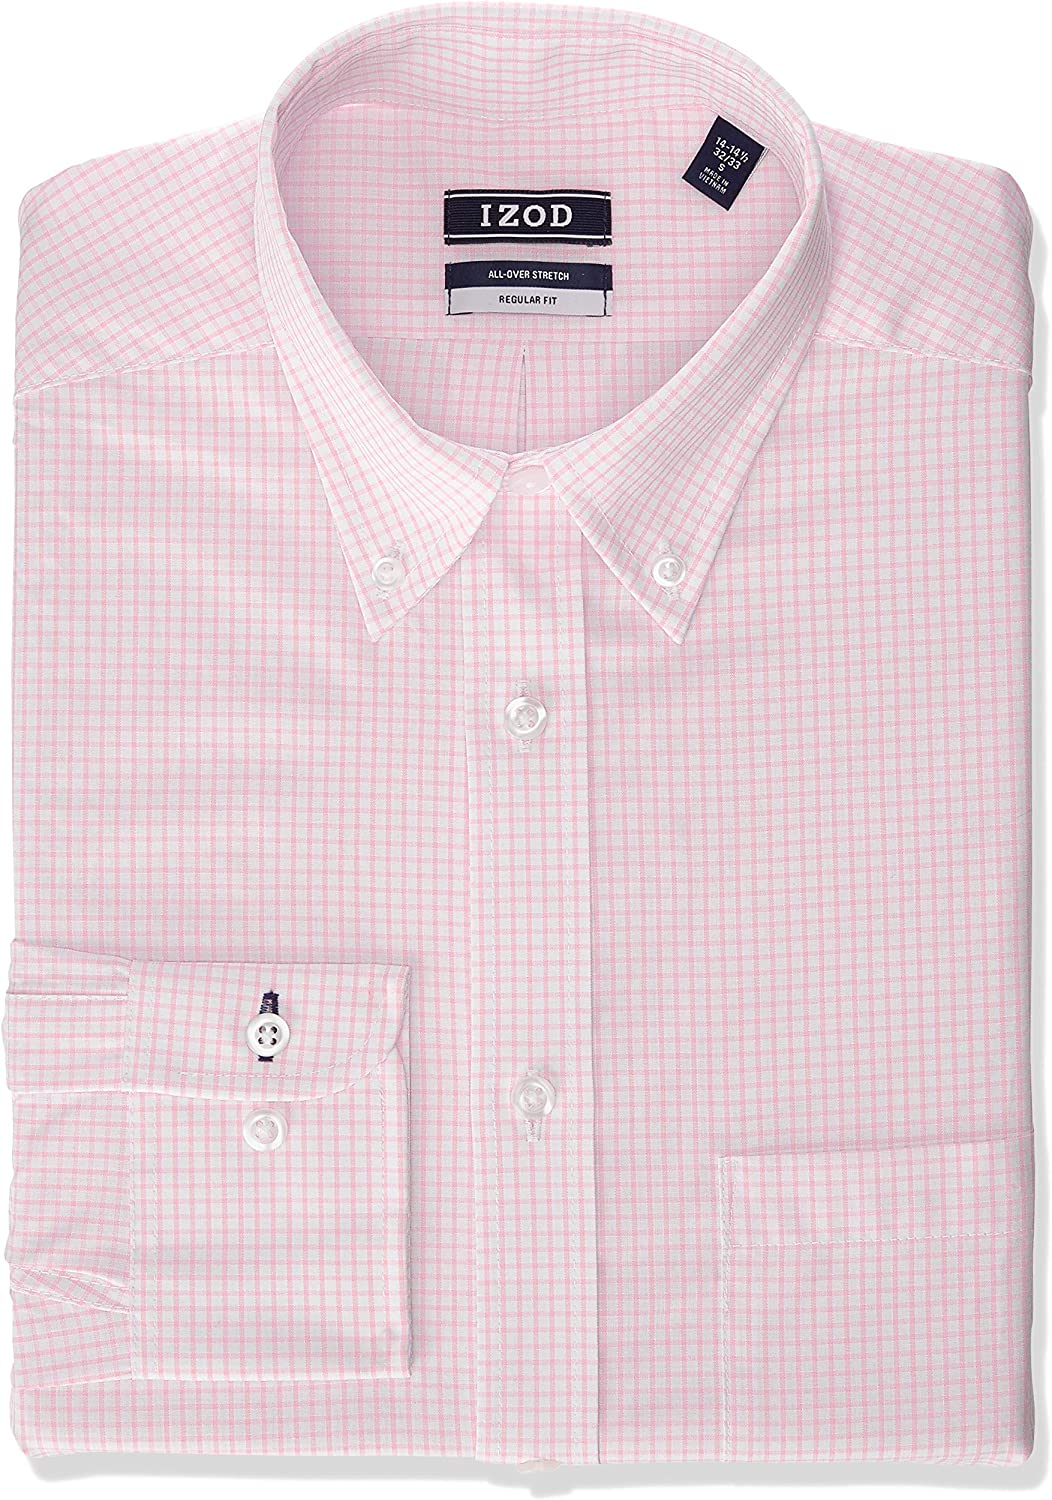 IZOD Mens Regular Fit Stretch Check Buttondown Collar Dress Shirt